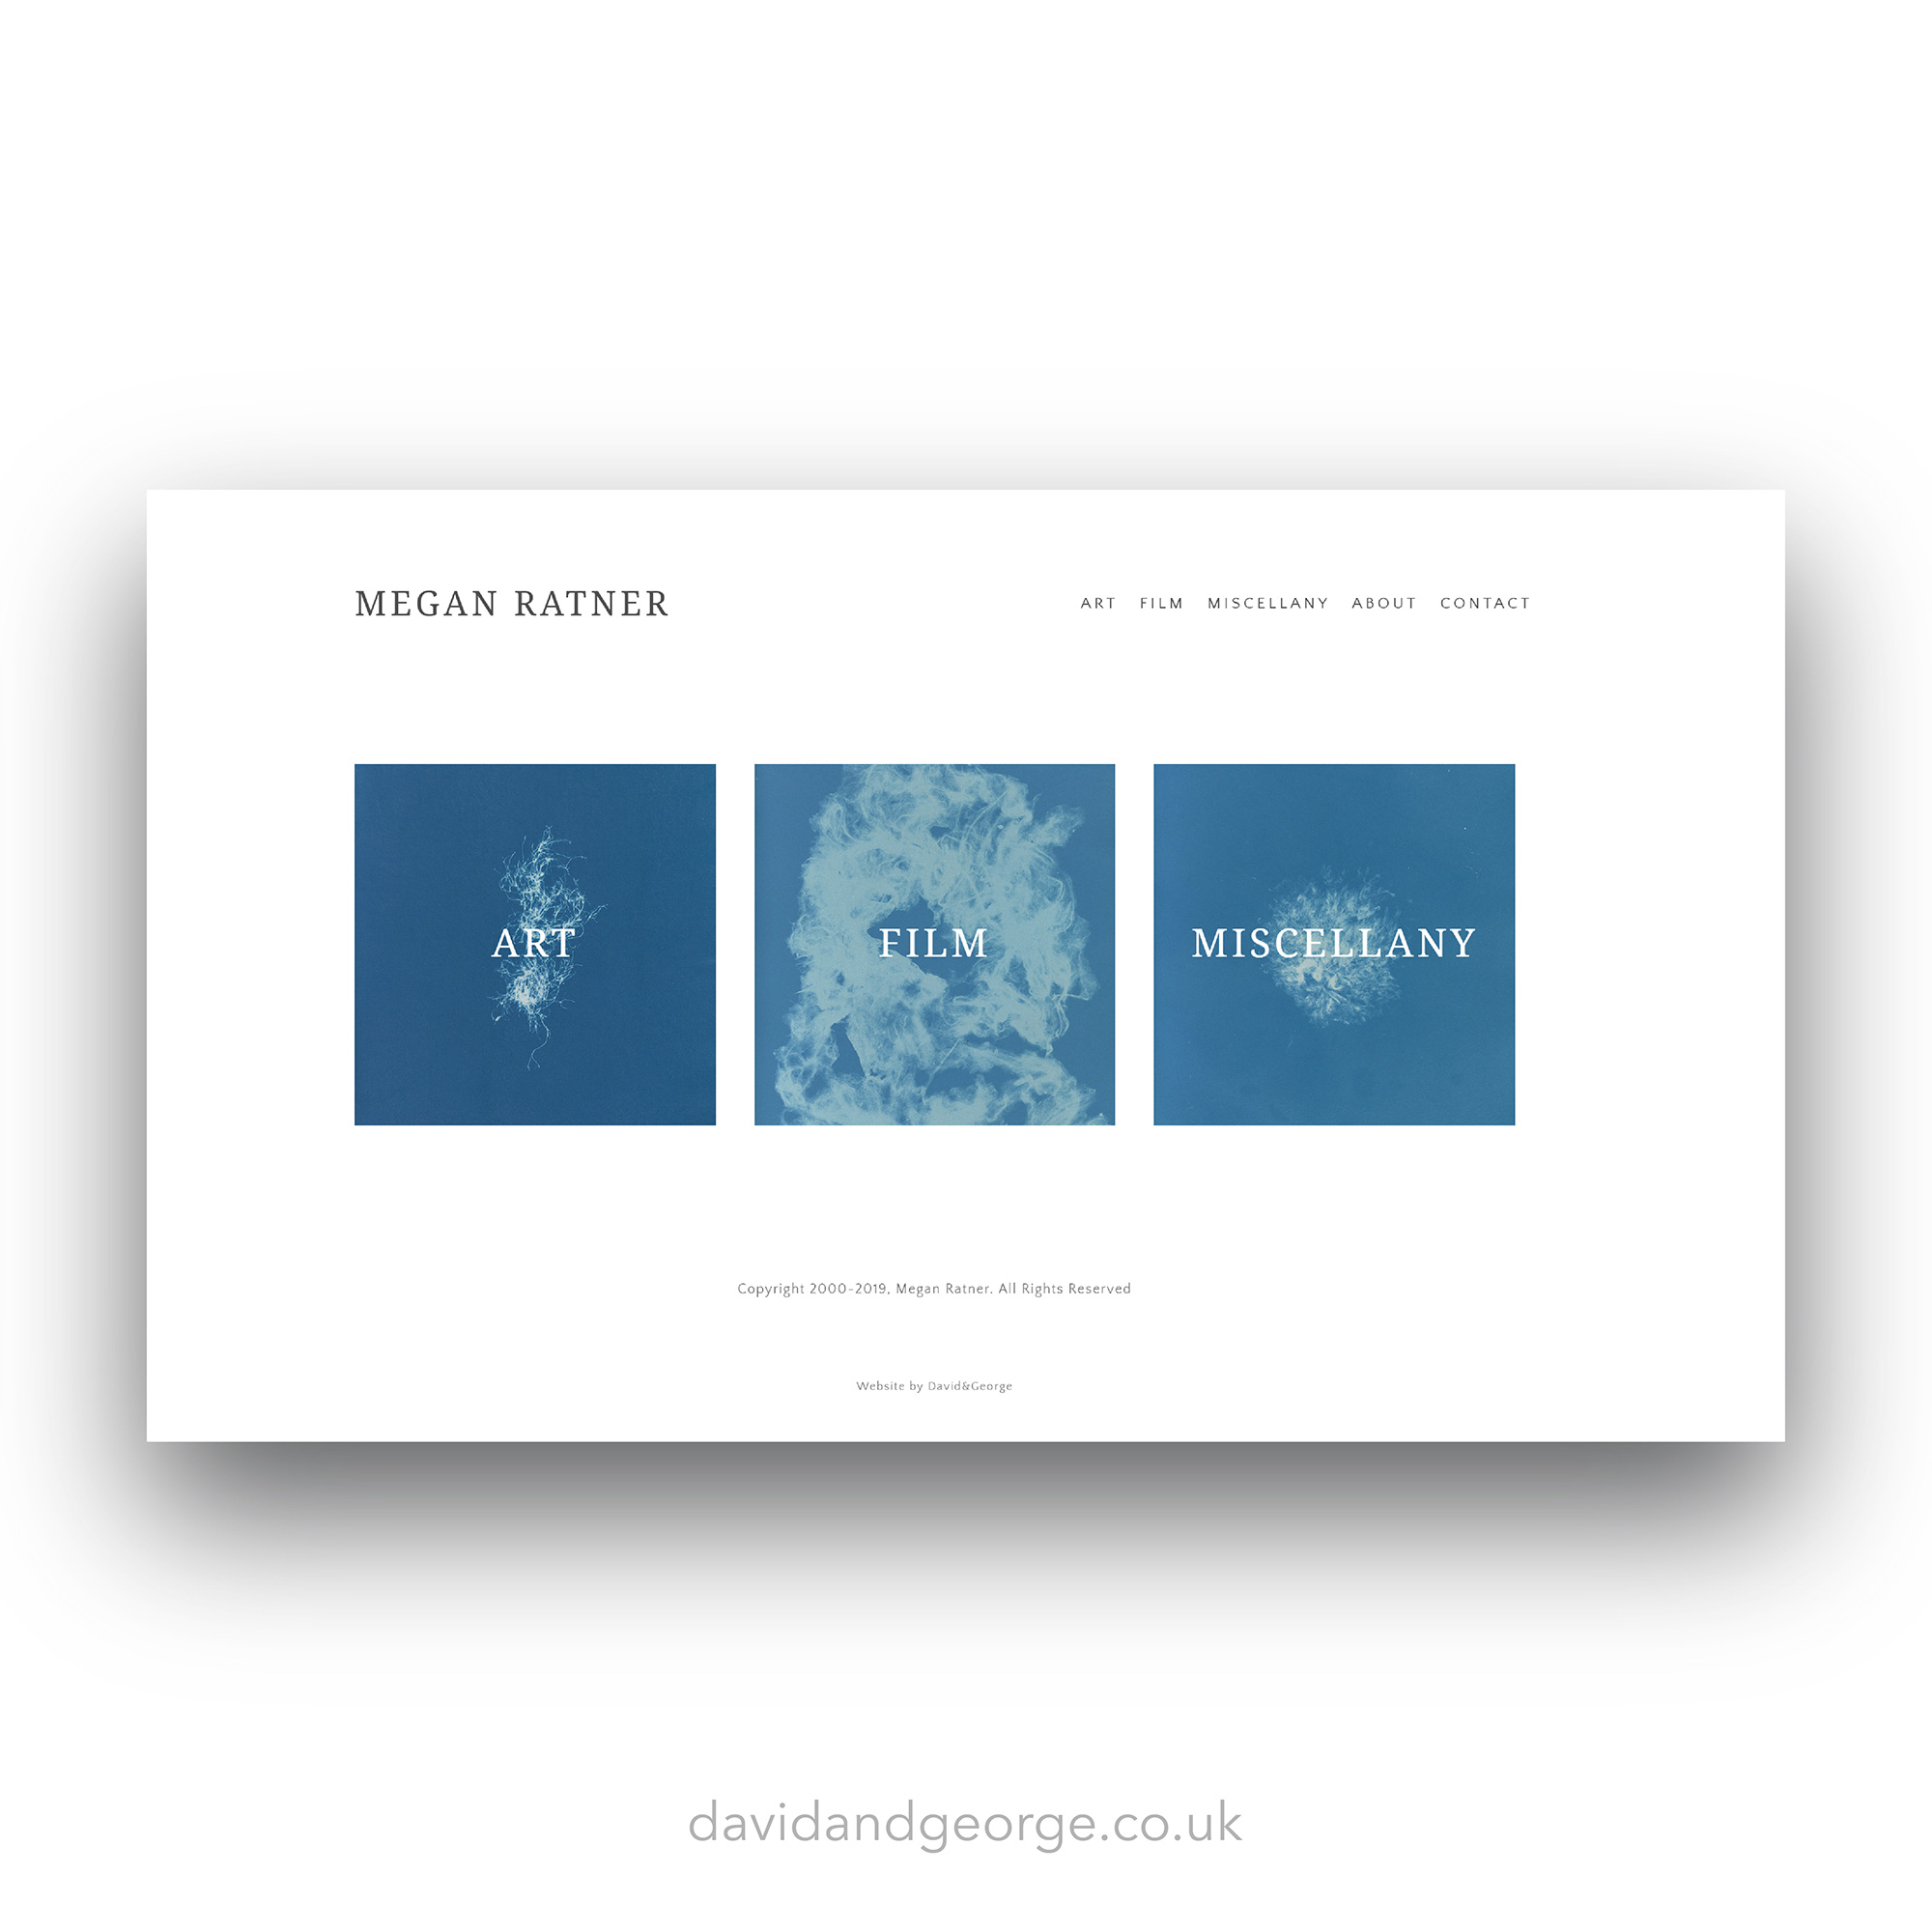 squarespace-website-design-london-edinburgh-uk-david-and-george-megan-ratner-writer-artist-filmmaker-new-york.jpg